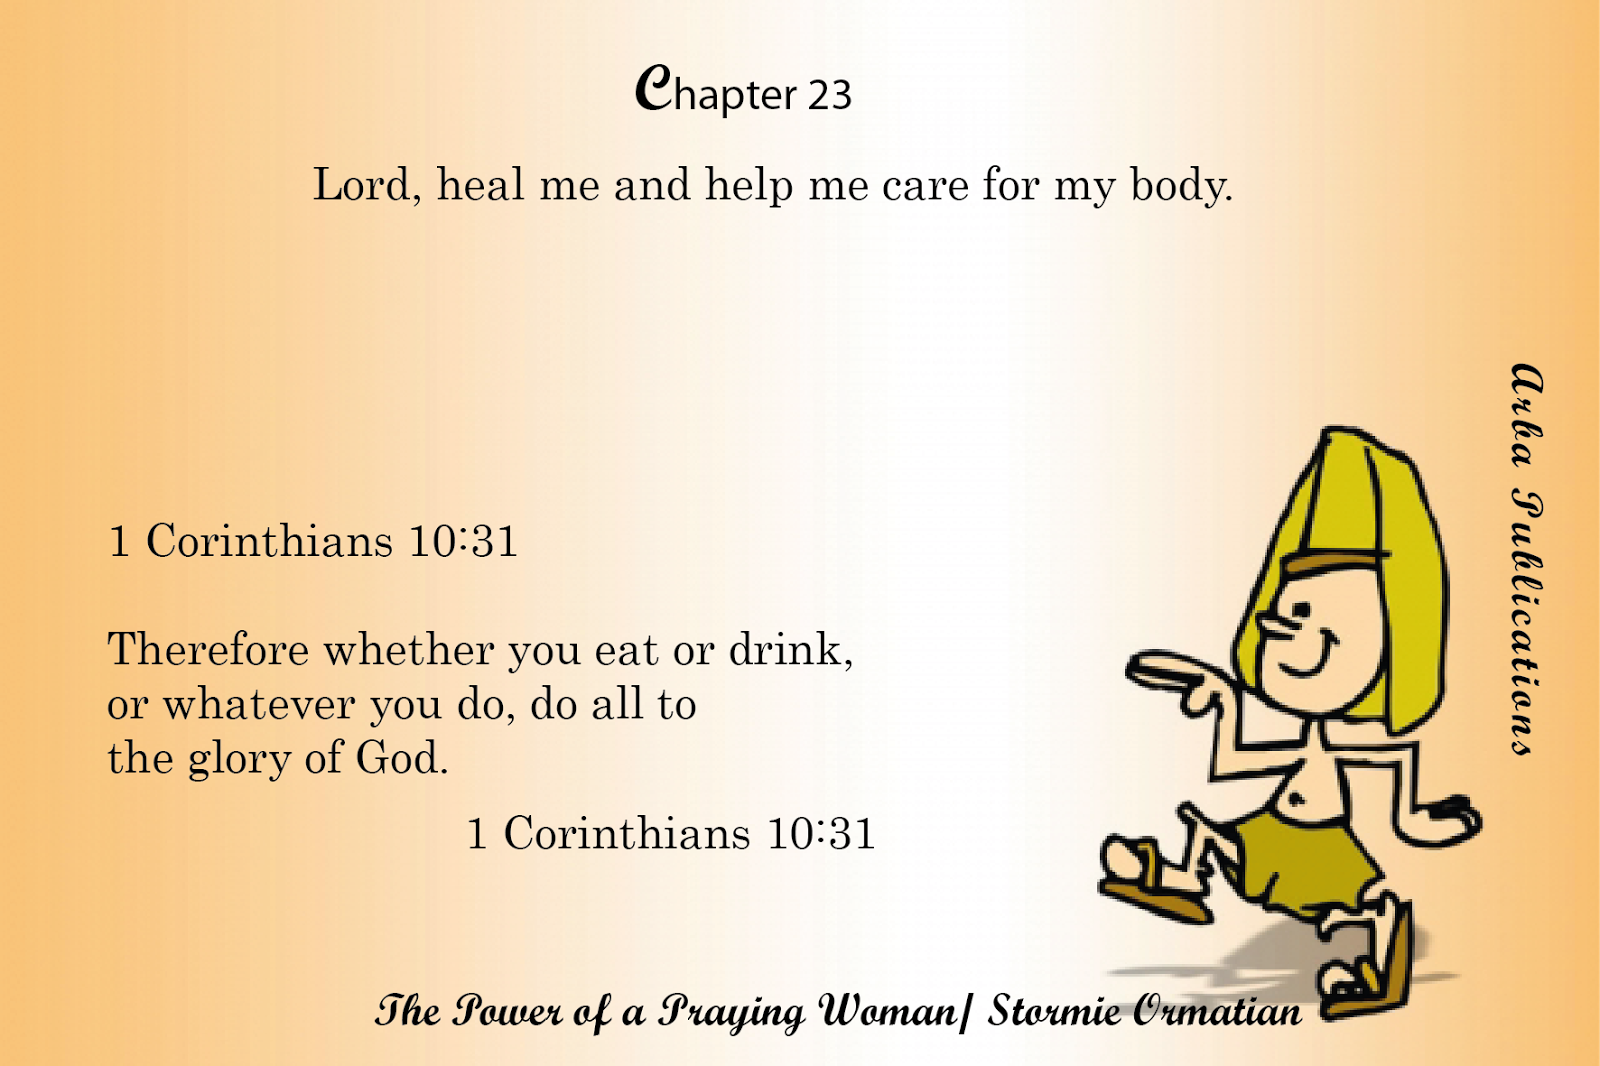 ARBA Publications: # Chapter 23: Lord, heal me and help me